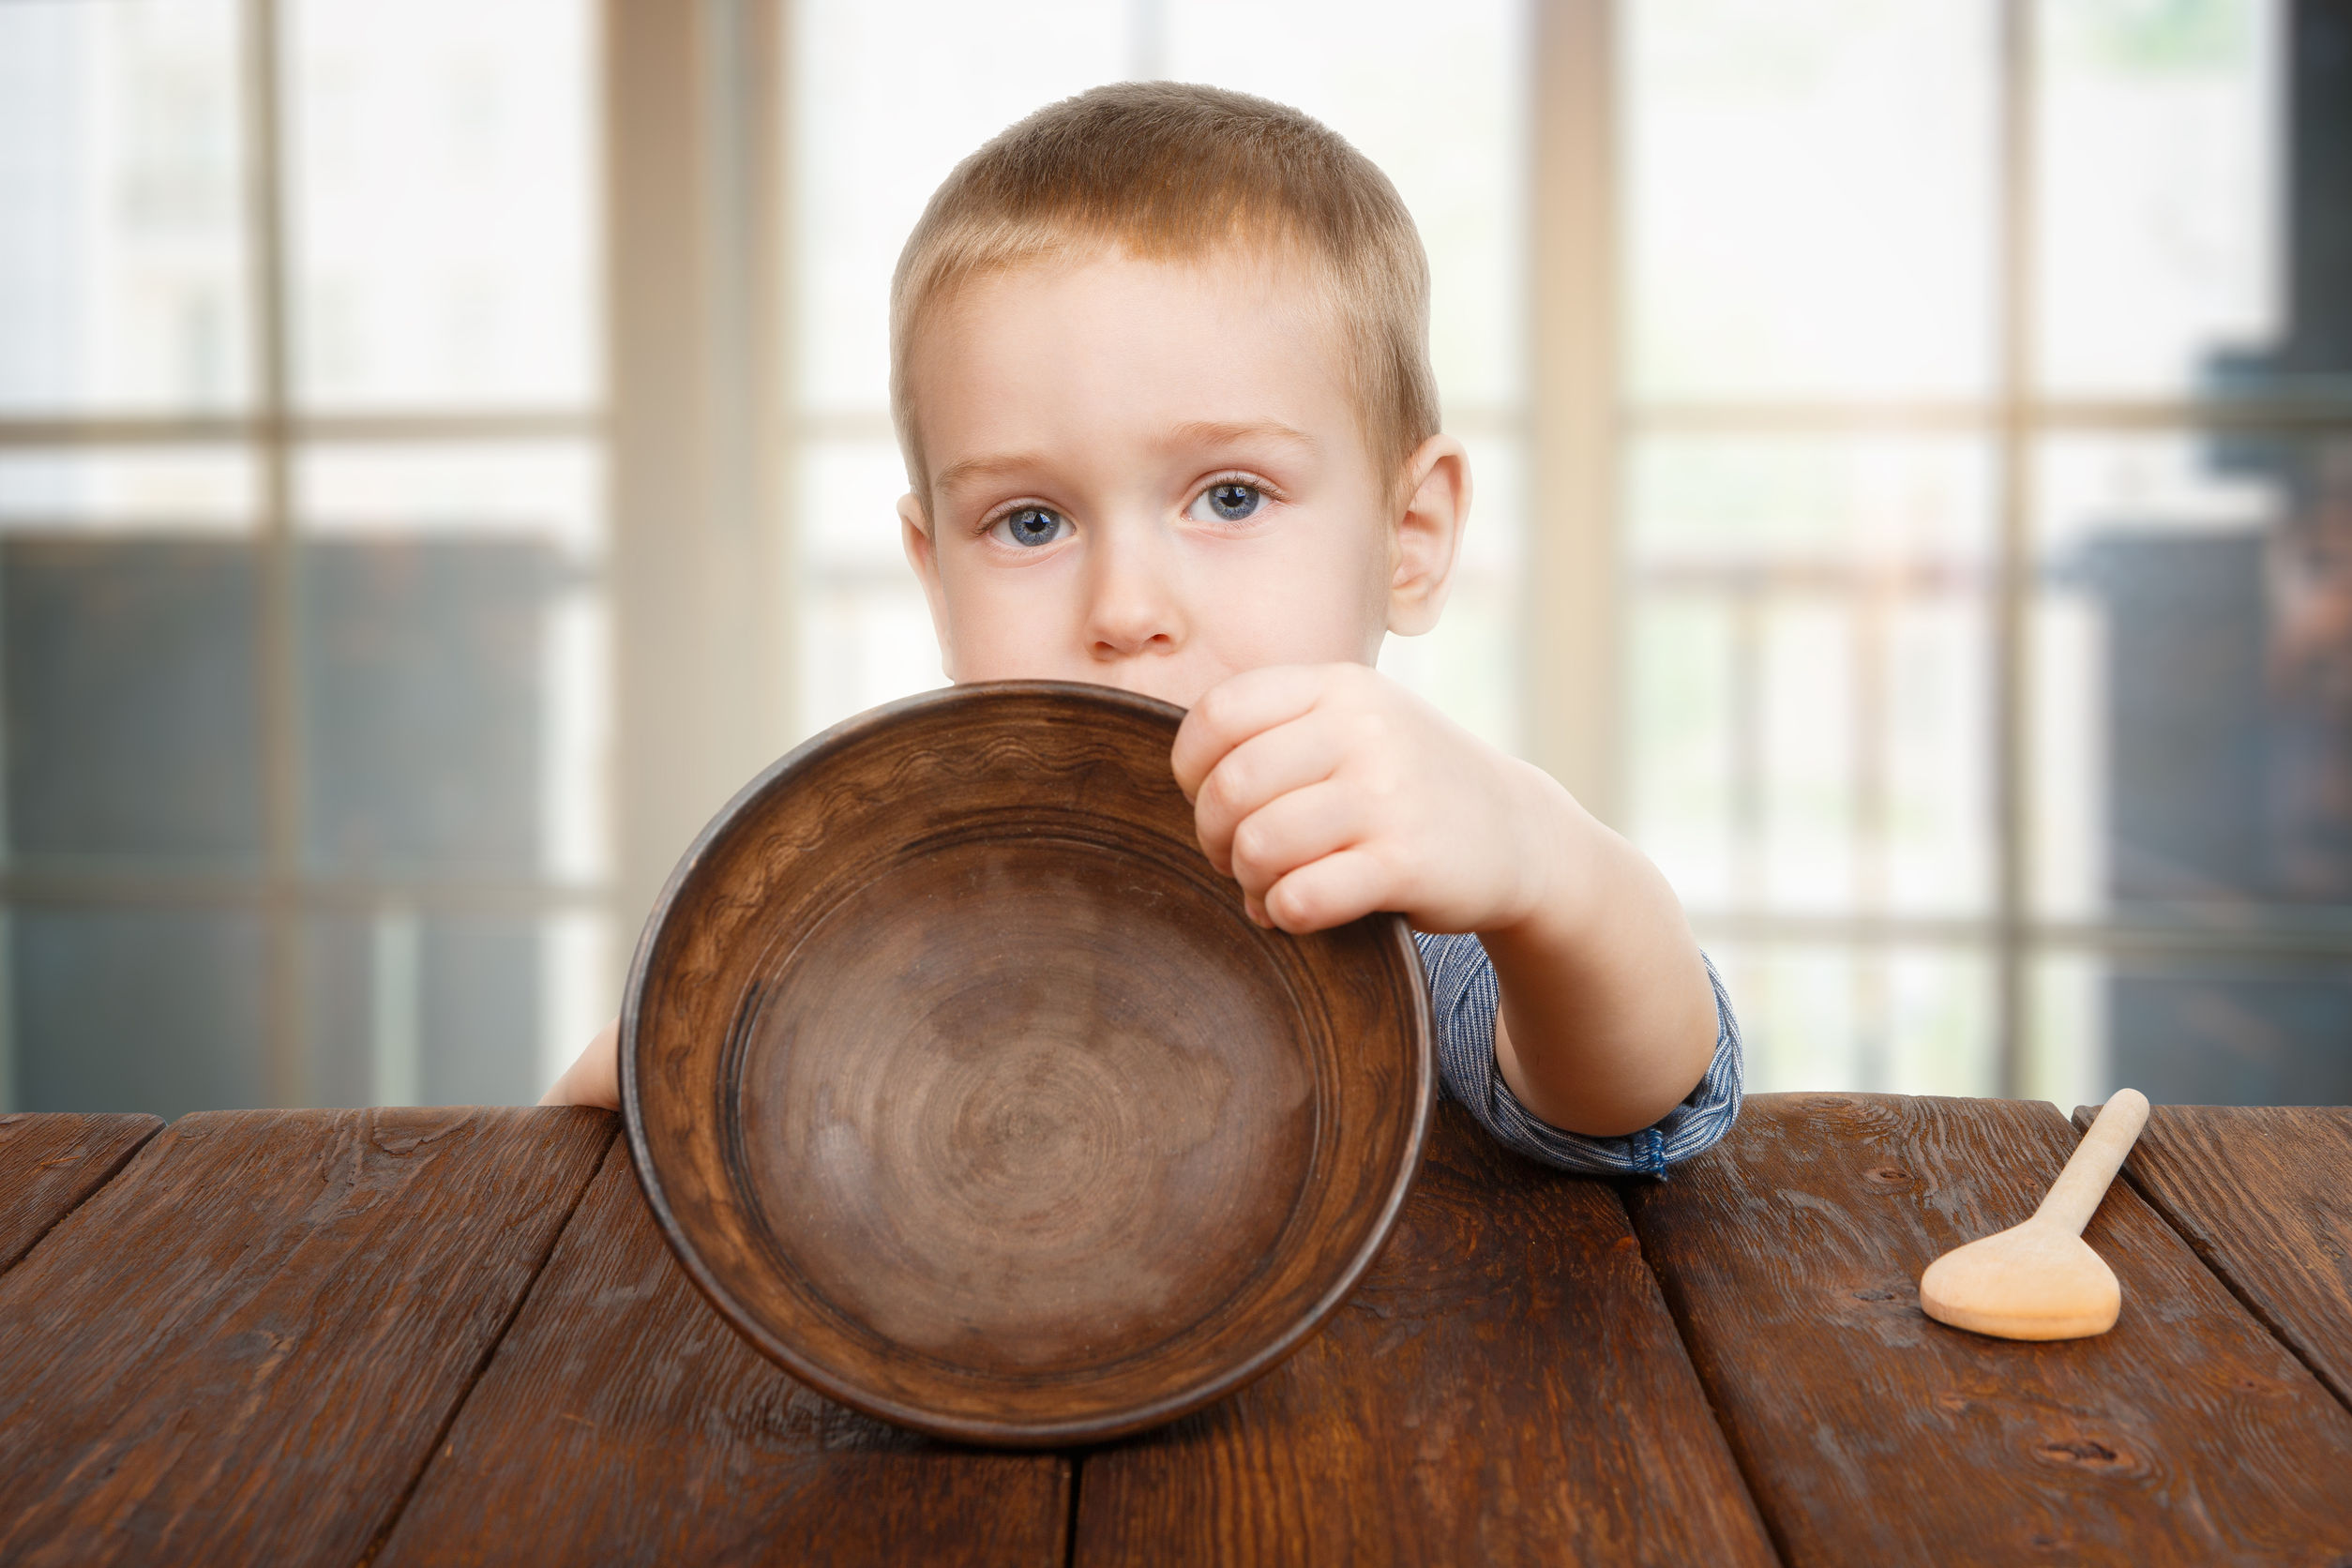 38229290 - cute small child boy sitting at wooden table shows empty plate